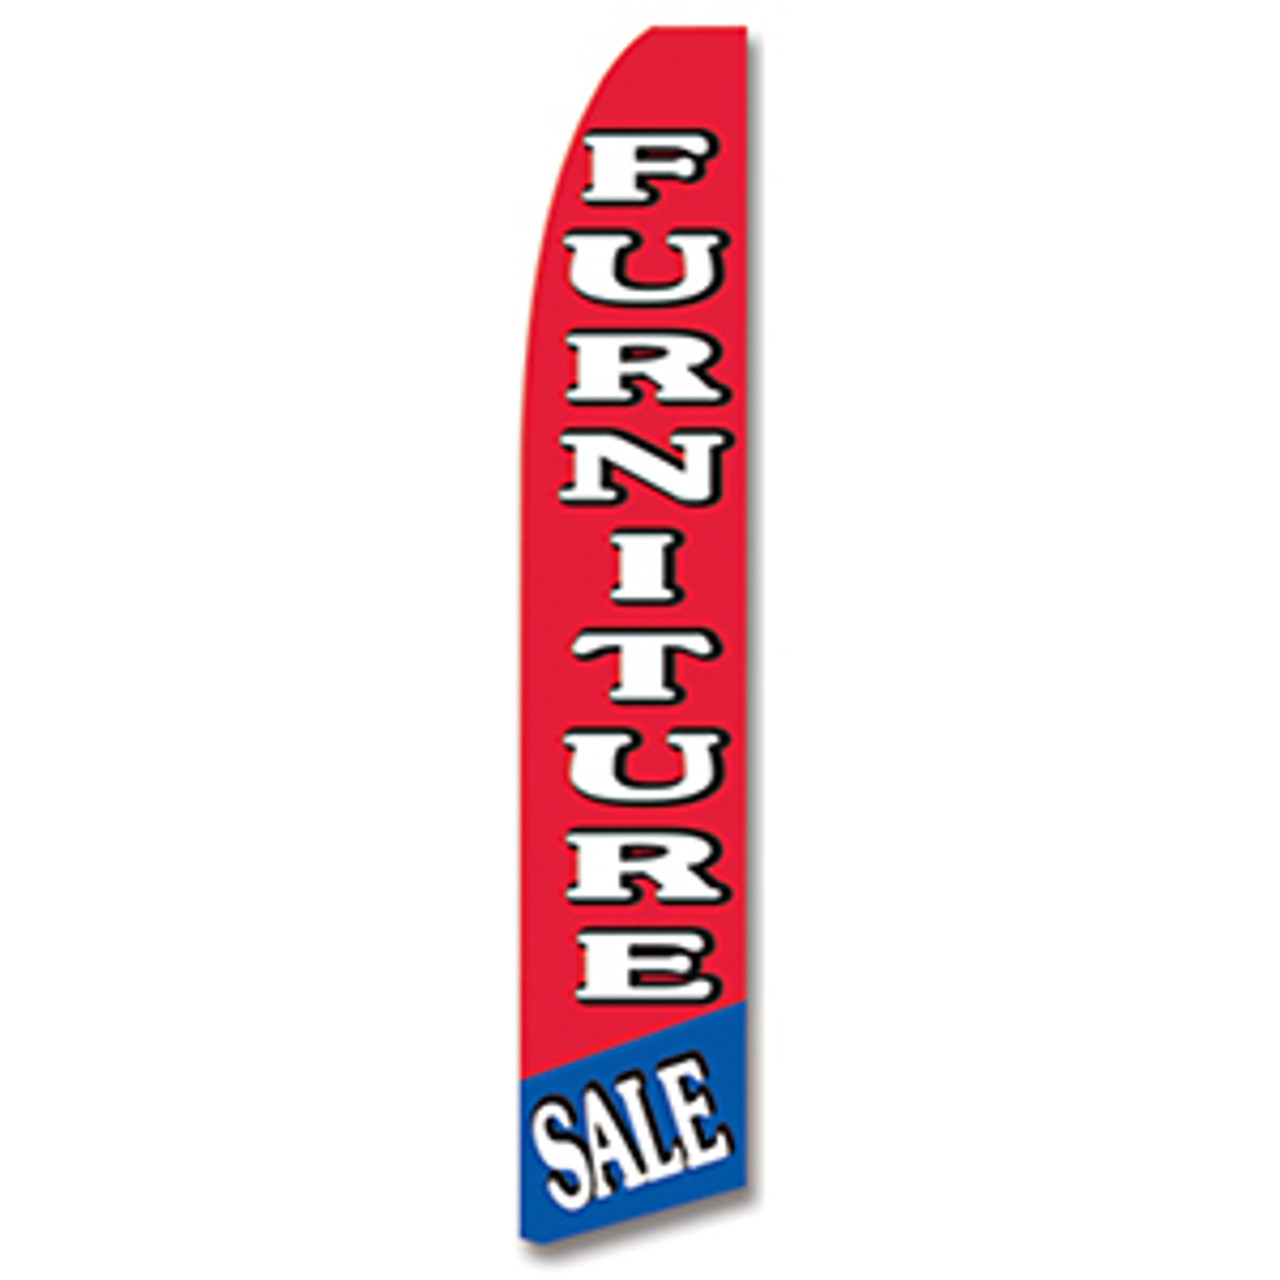 Furniture Sale - Red, White, and Blue - Feather Flag